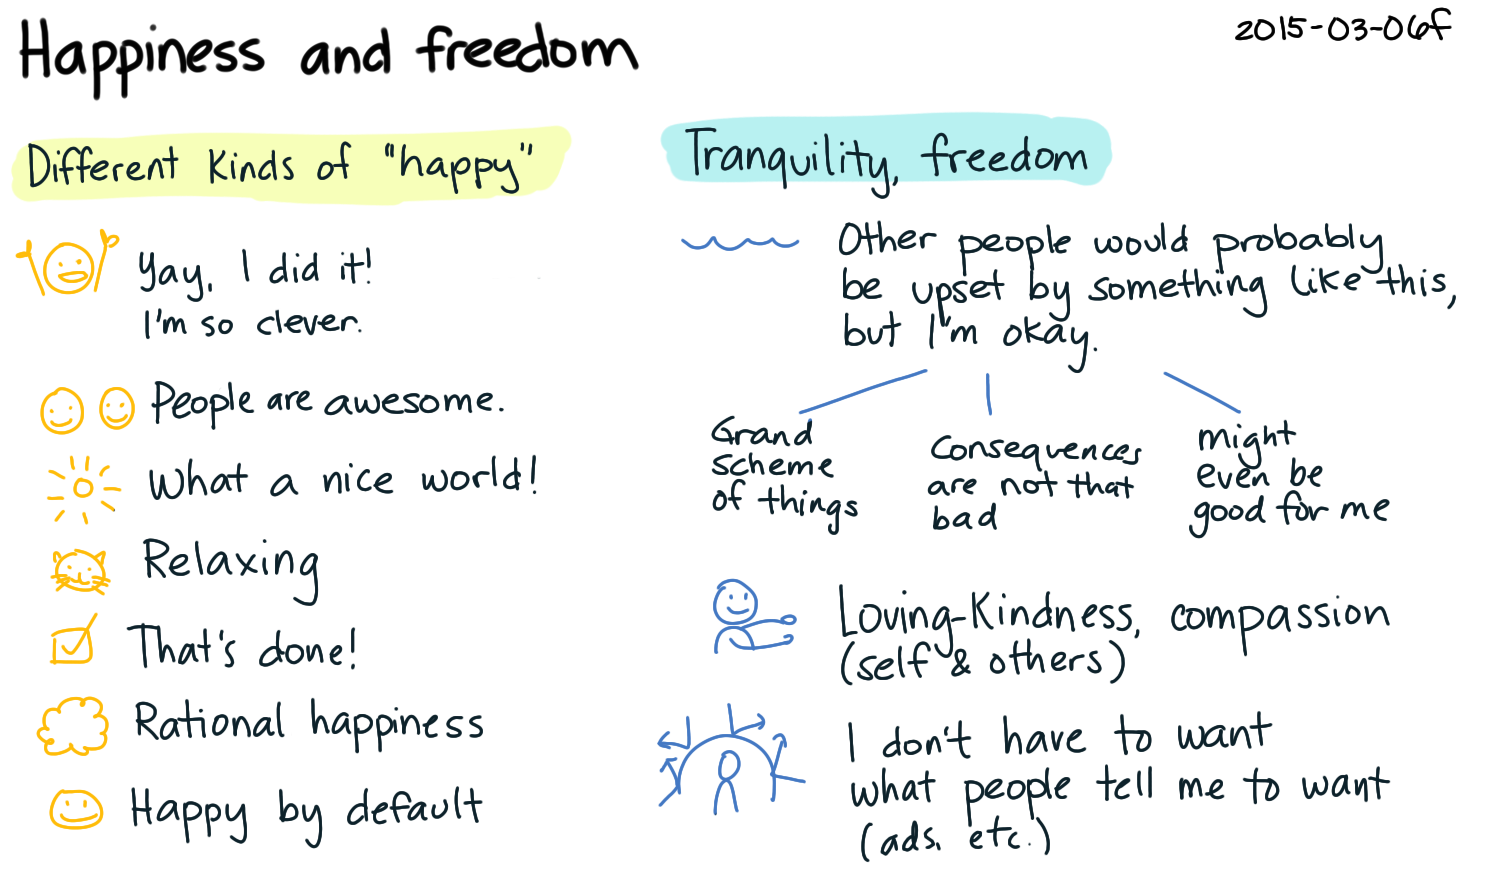 2015-03-06f Happiness and freedom -- index card #feelings #philosophy.png